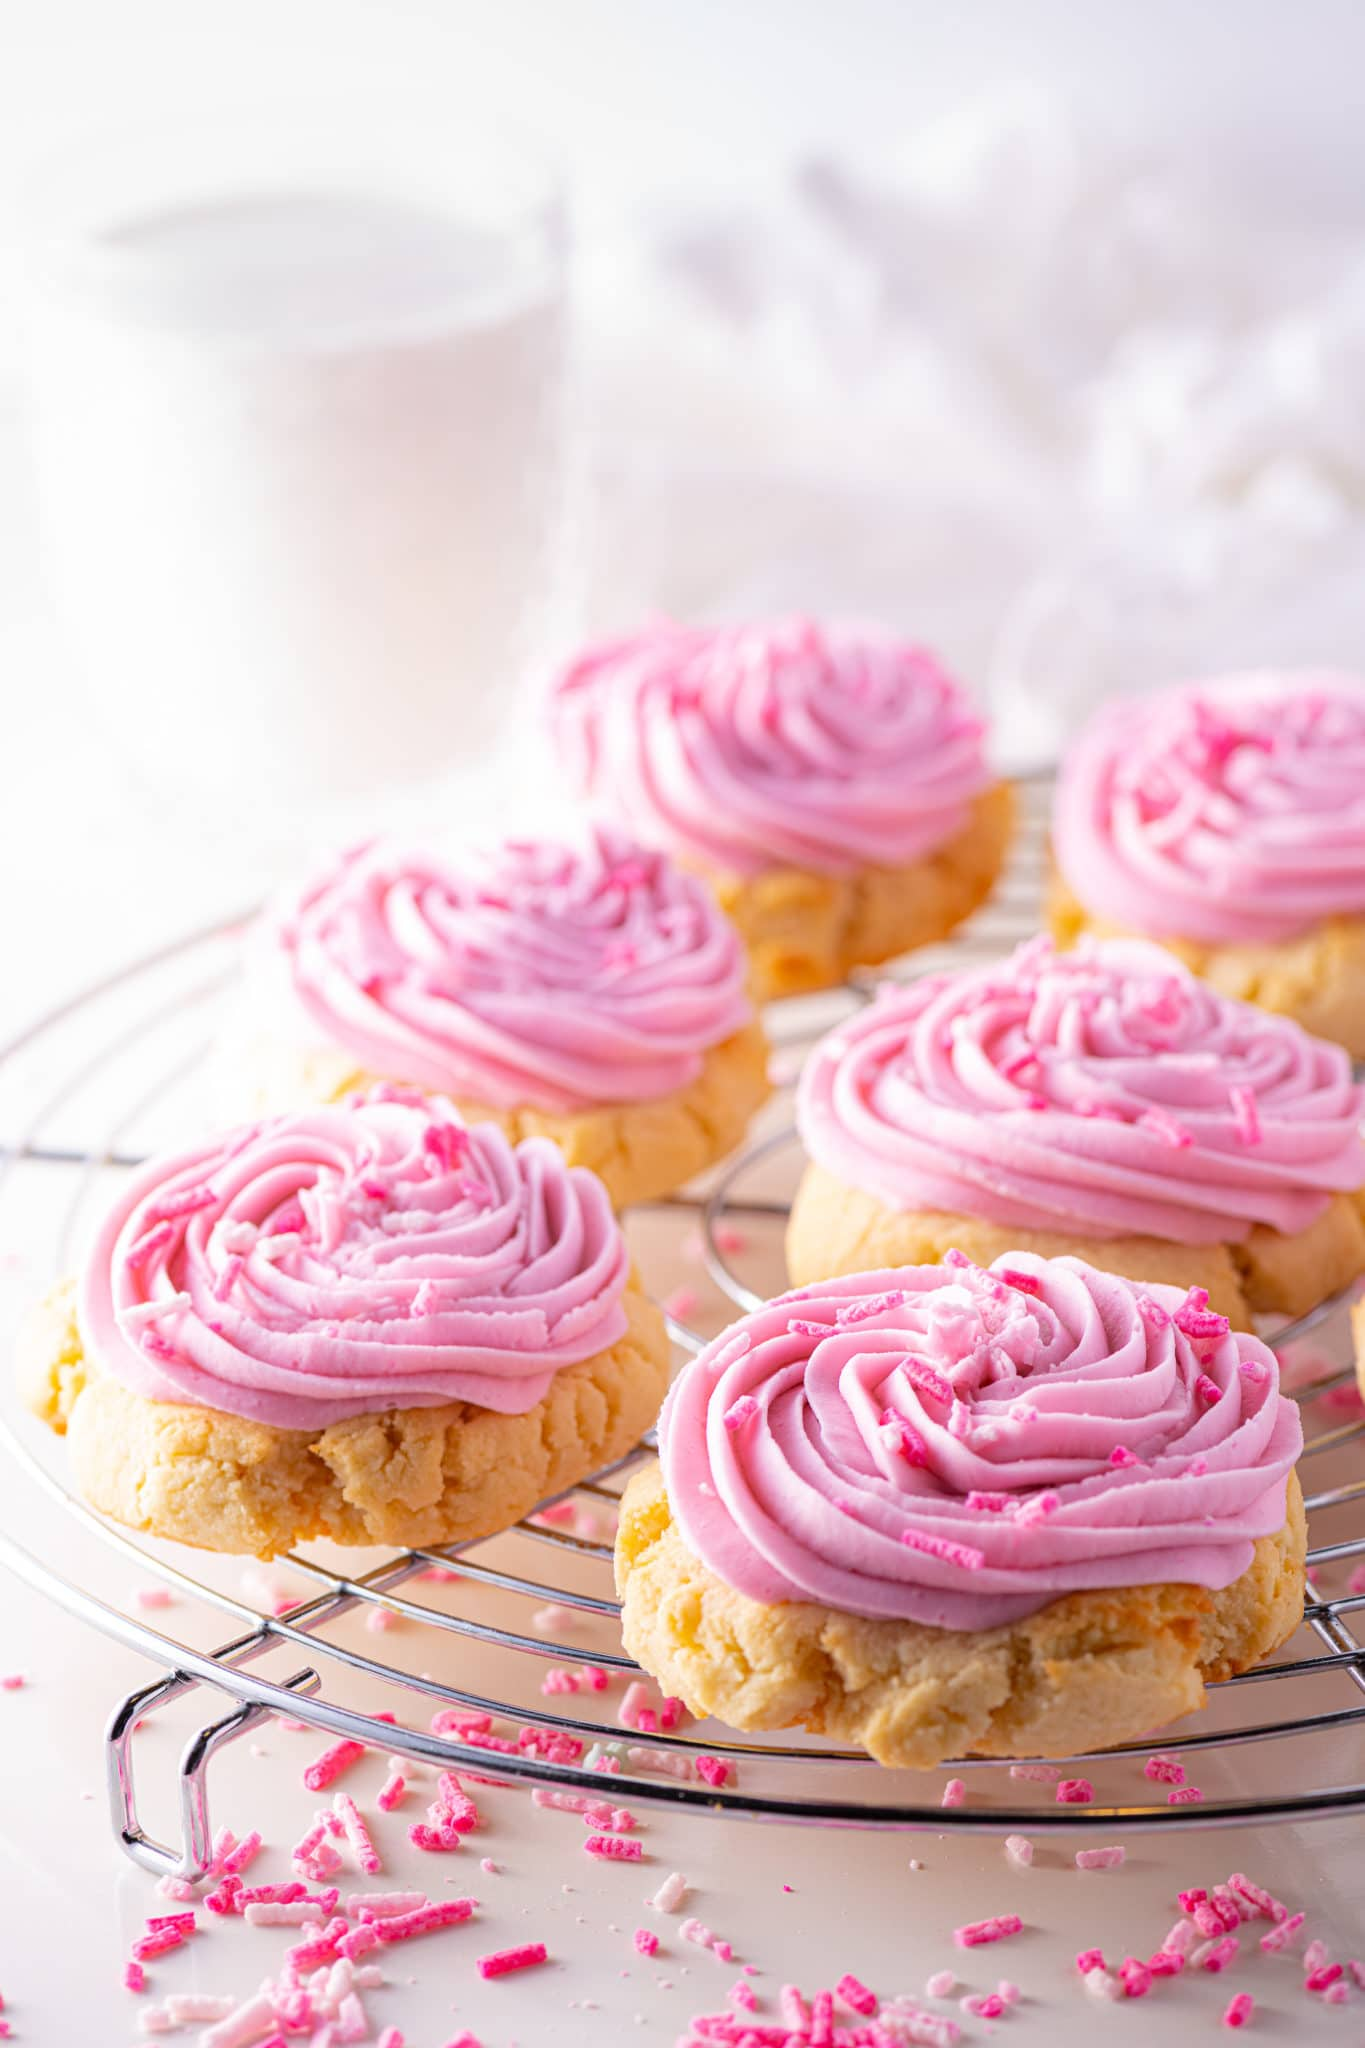 Pink sugar cookies on a cooling rack with scattered pink sprinkles and a glass of almond milk in the background